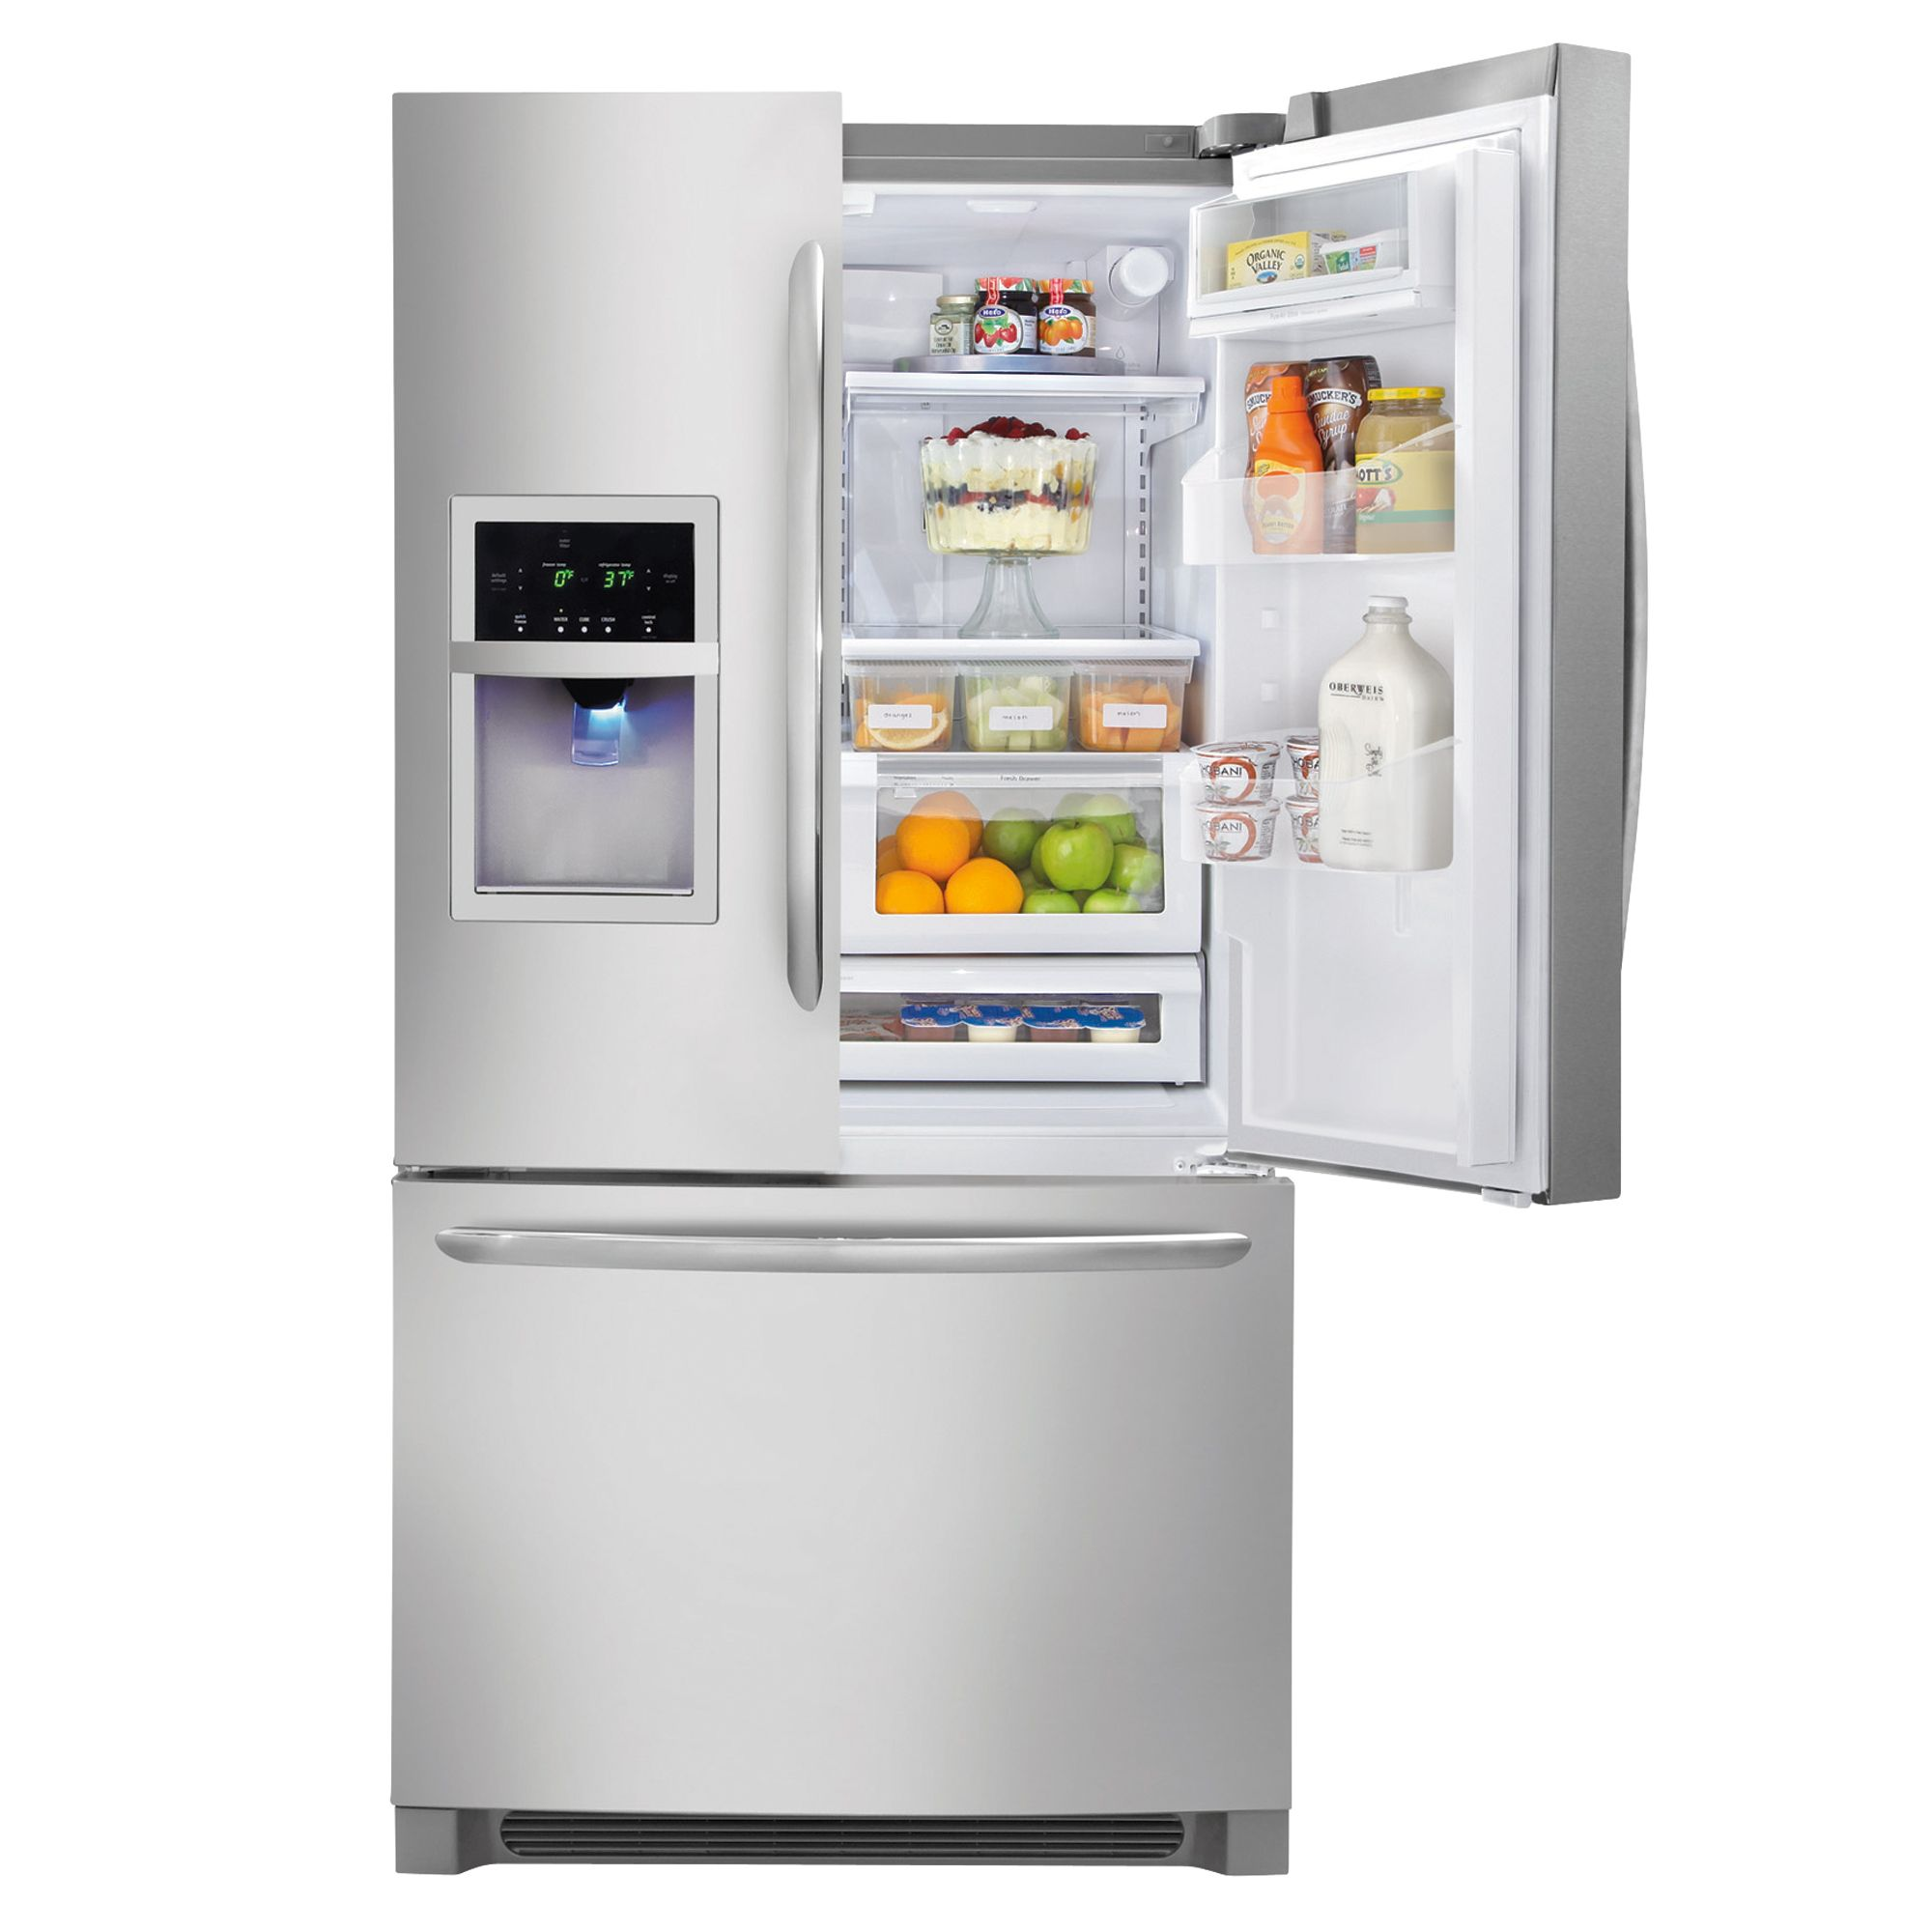 Frigidaire 25.8 cu. ft. French-Door Bottom-Freezer Refrigerator